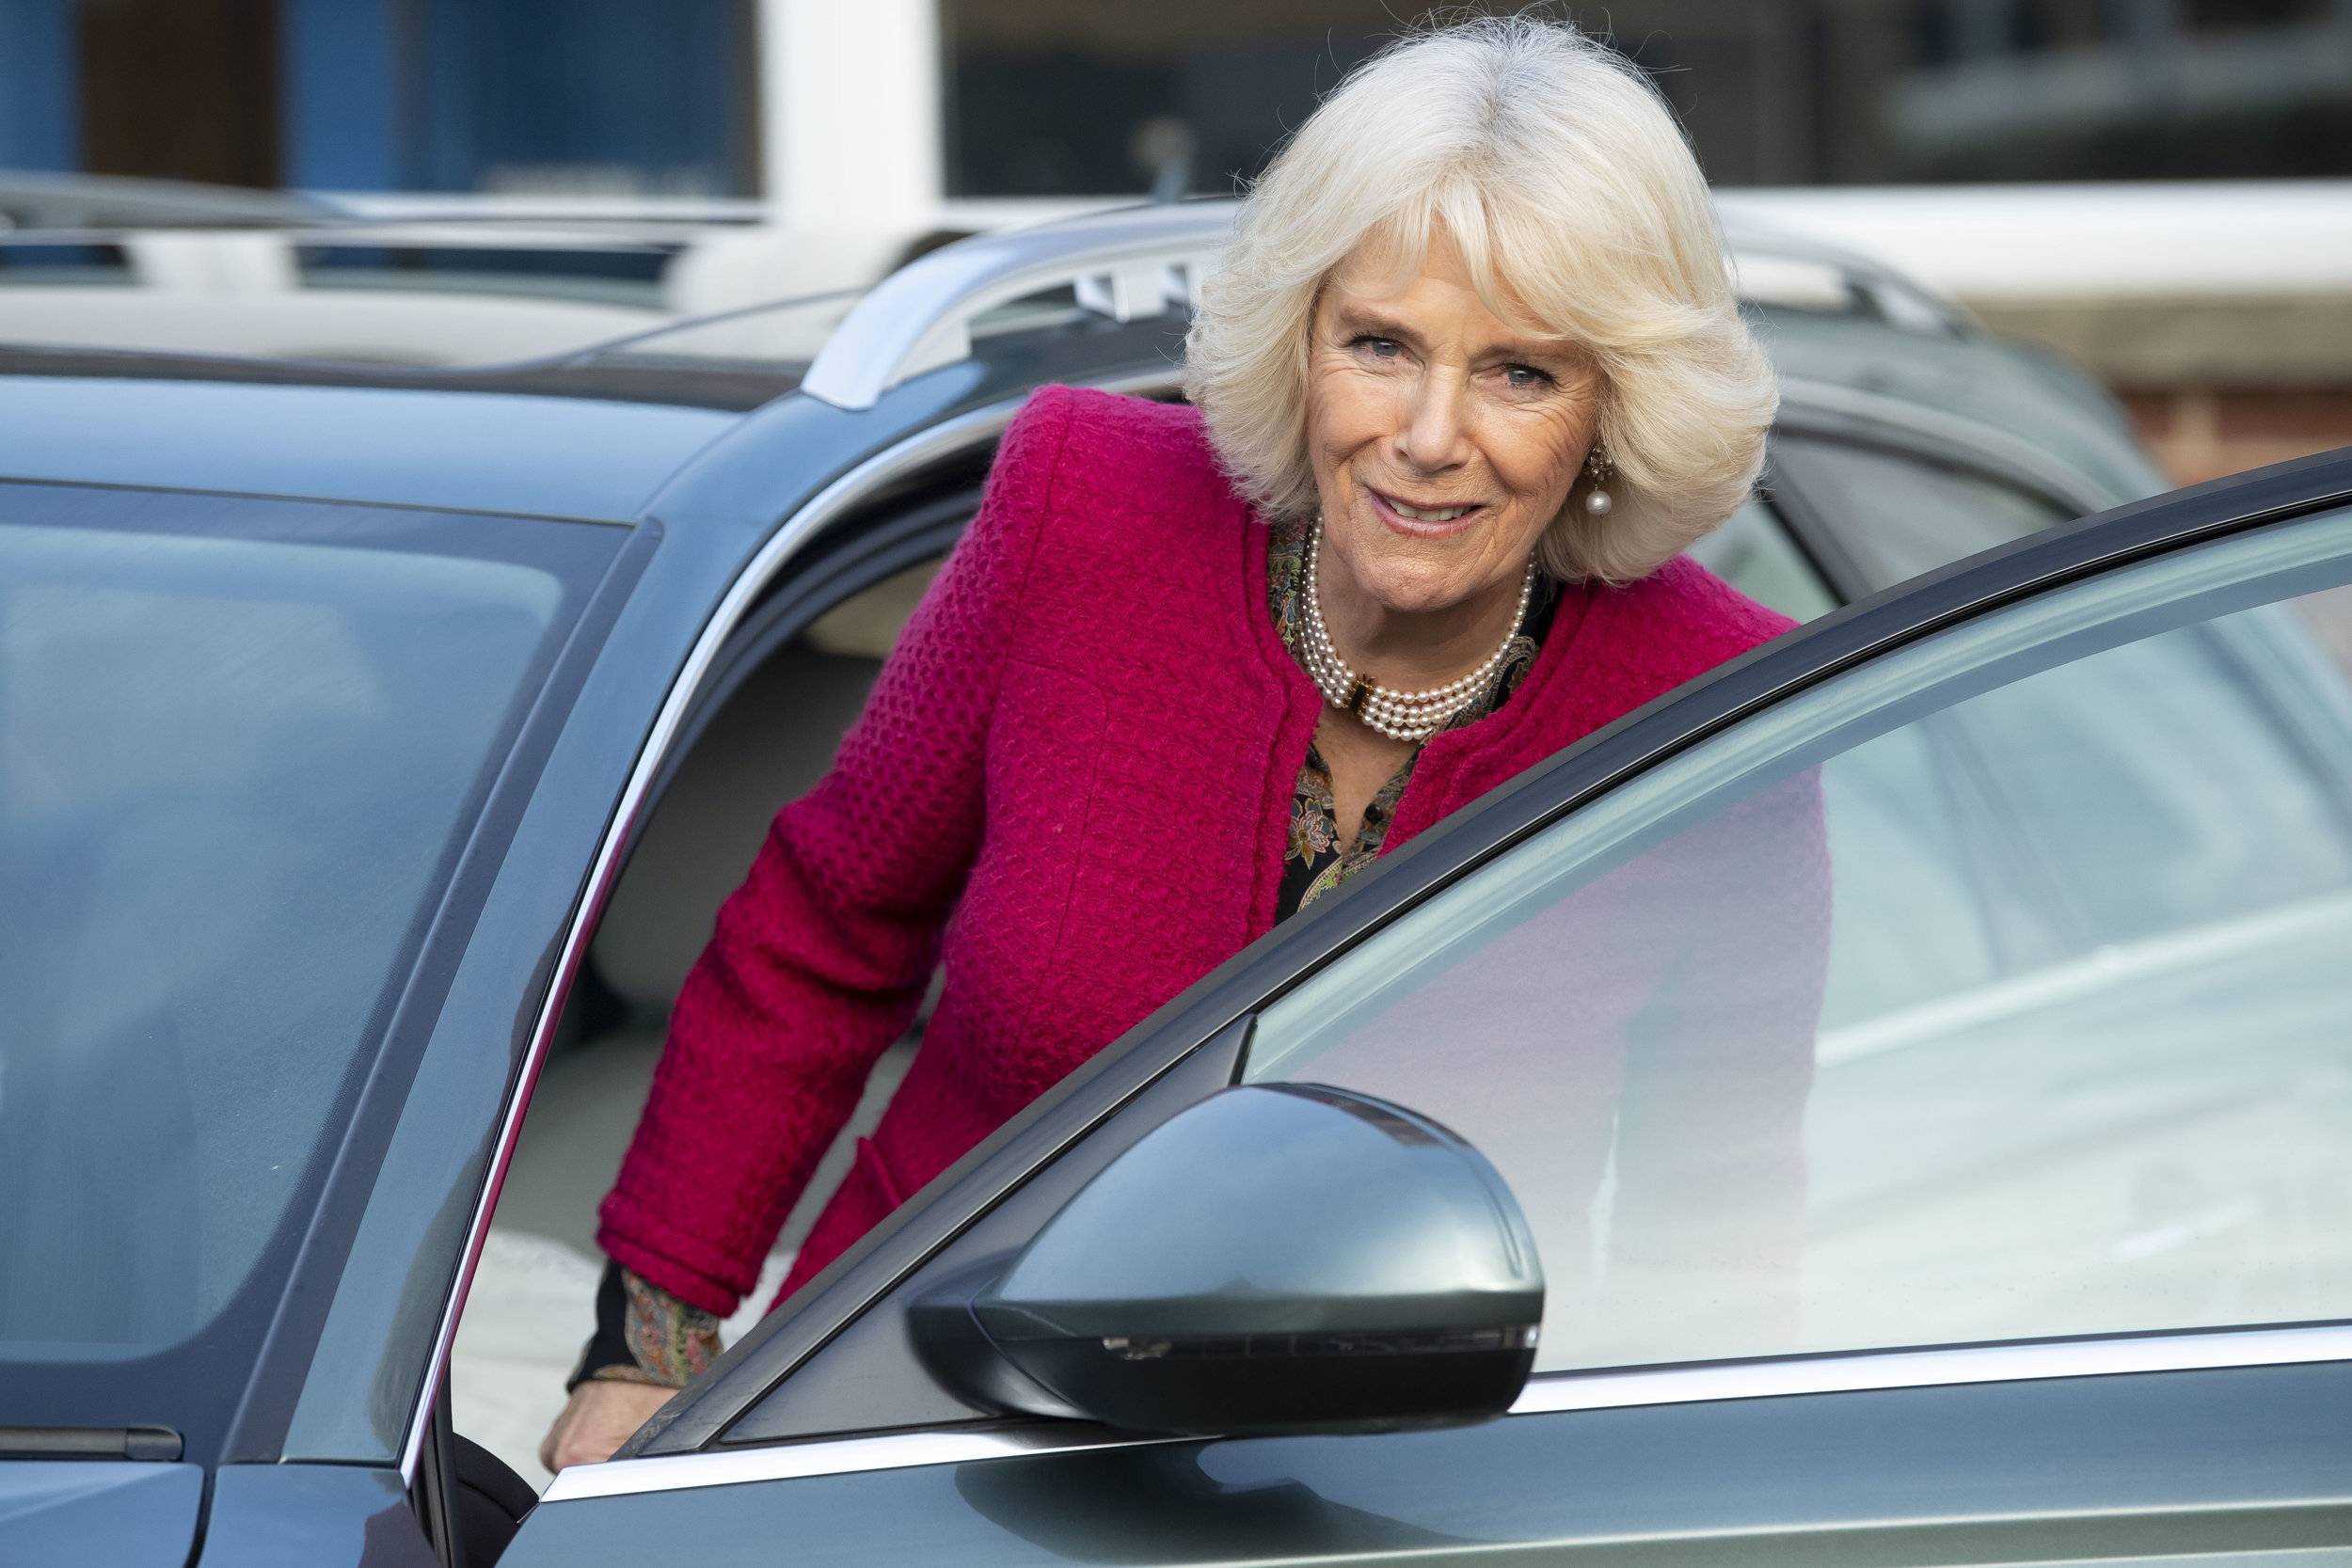 SWINDON, ENGLAND - JANUARY 24: The Duchess of Cornwall, Patron of the National Literacy Trust, gets into a car following a visit to the Lyndhurst Centre where she met foster carers and children on January 24, 2019 in Swindon, England. The Lyndhurst Centre is the Swindon office of the Regional Adoption Agency. (Photo by Matthew Horwood/Getty Images)